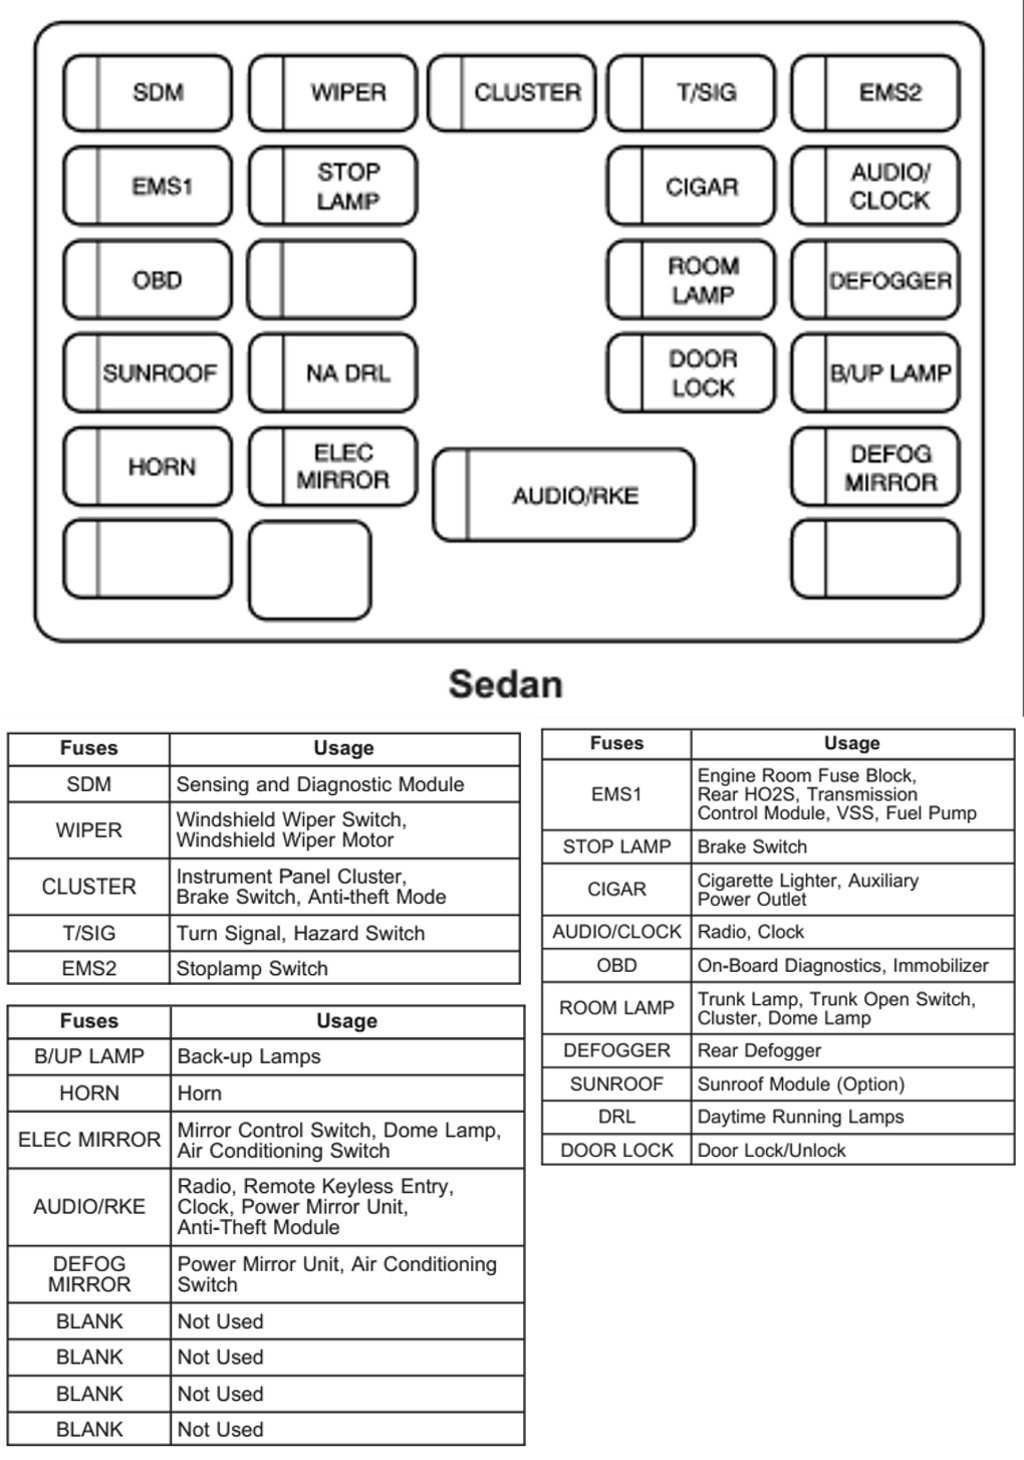 WZ_2942] 2007 Chevy Aveo Sedan Engine Compartment Fuse Box Diagram Free  DiagramGram Rally Impa Rele Pap Hendil Mohammedshrine Librar Wiring 101